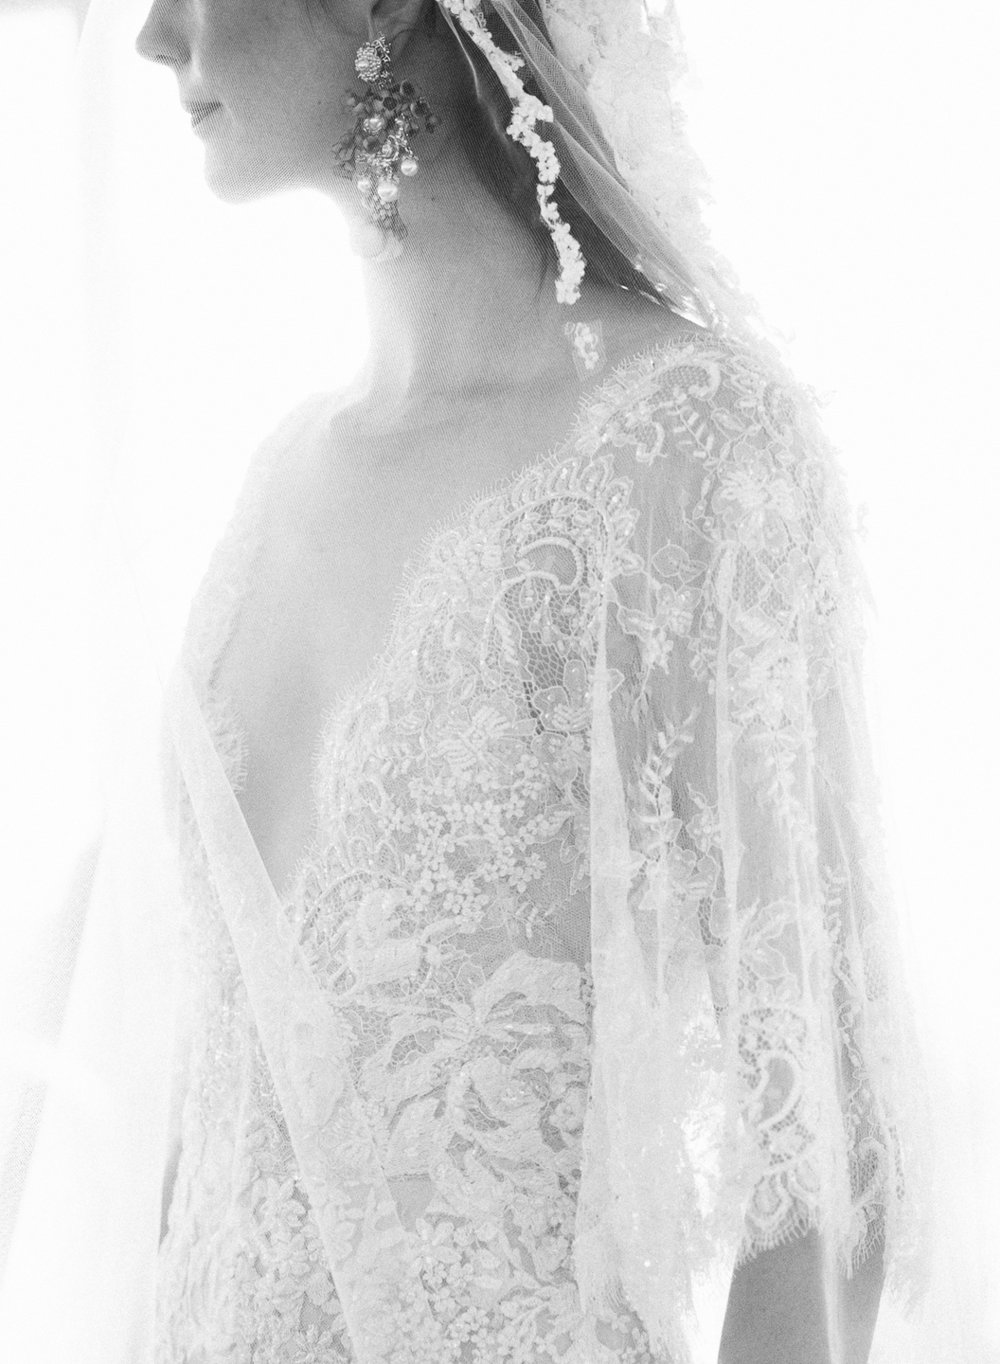 marchesa_bridal_017_greg_finck-027_50556.jpg